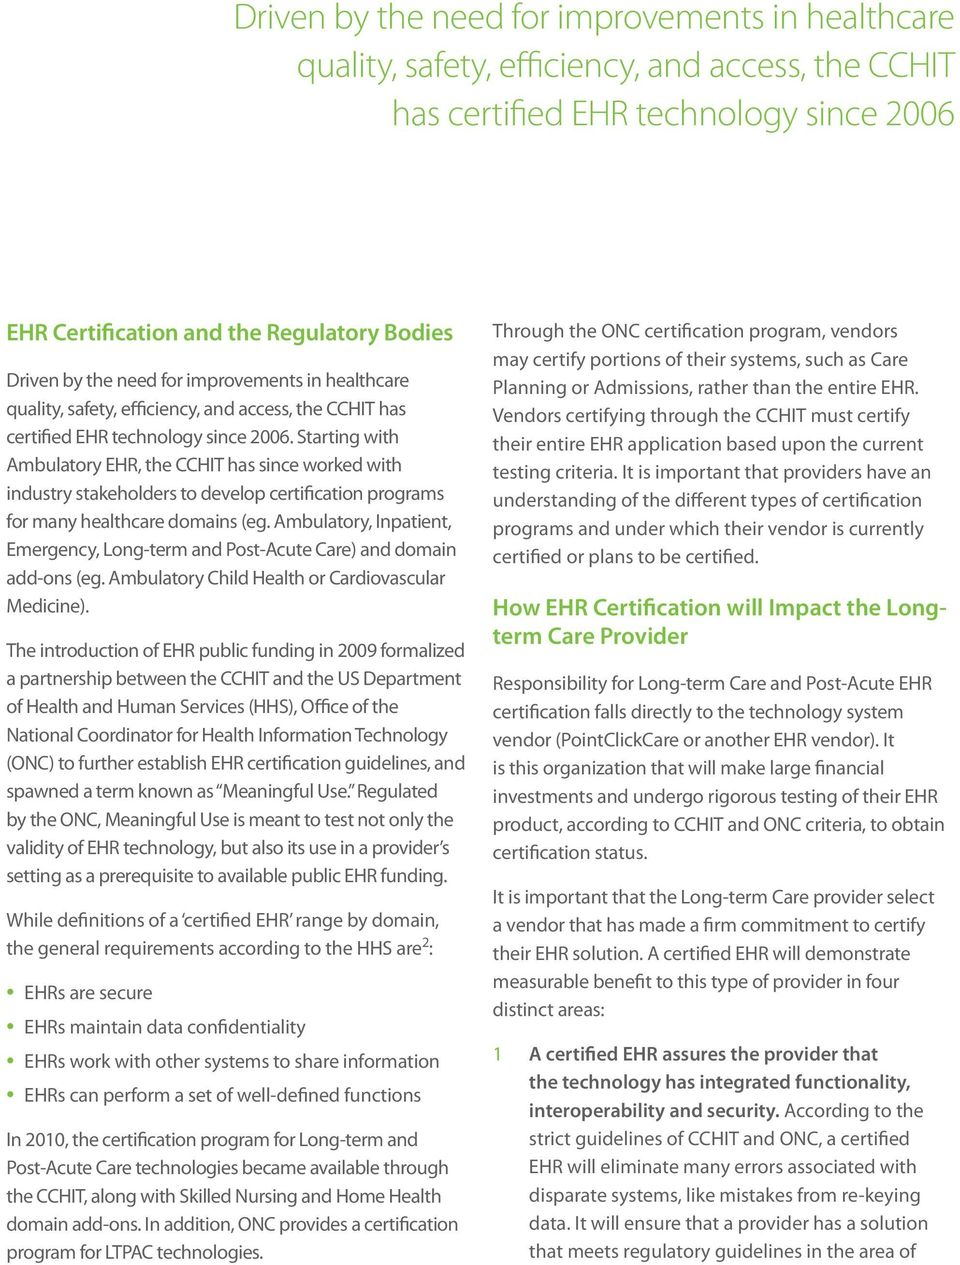 Ehr Certification The Impact On The Long Term Care Industry